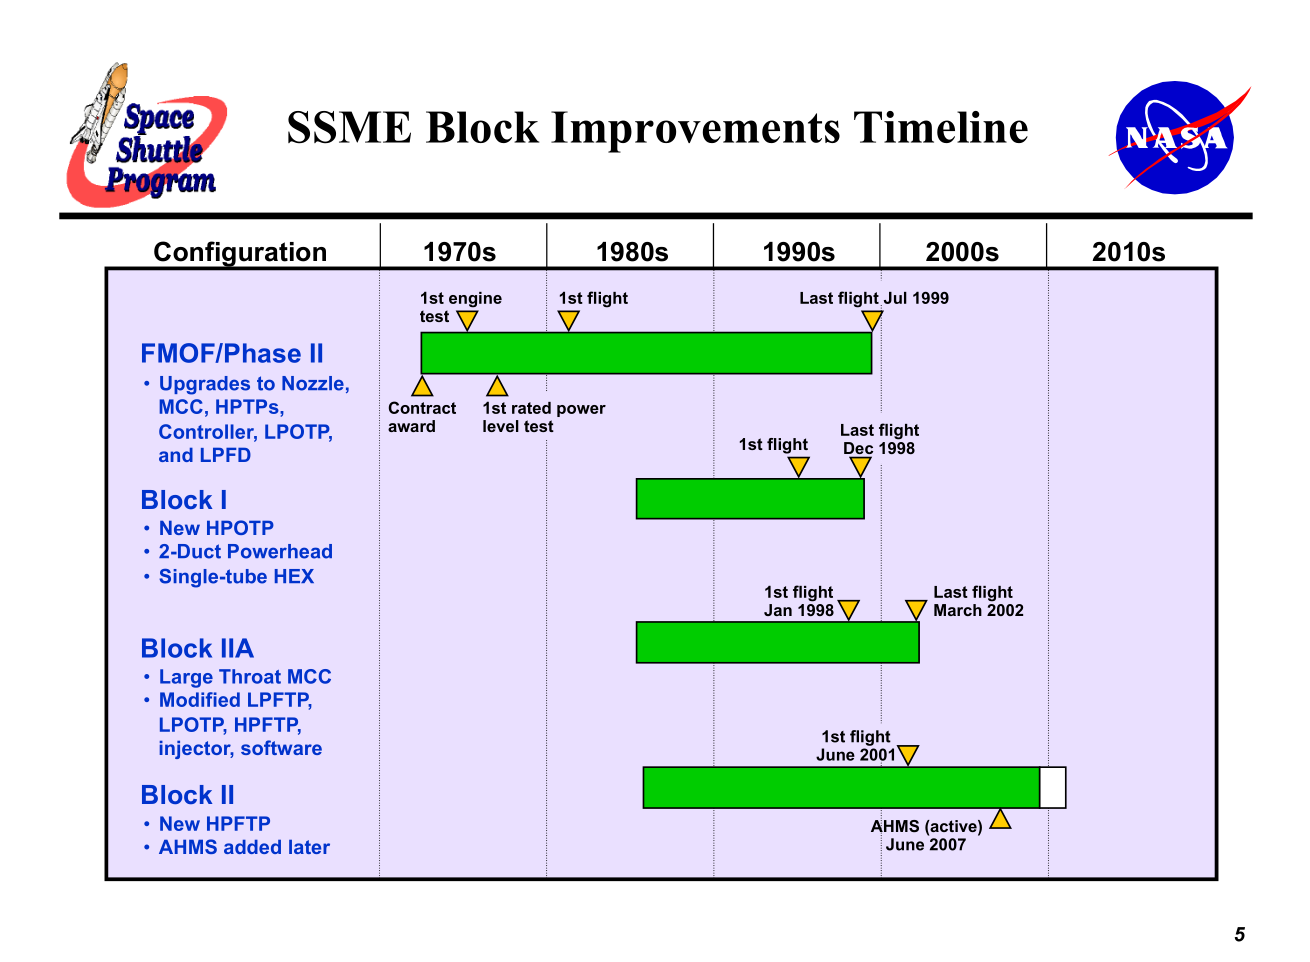 Ssme Returns As Ar 22 For Rapid Reuse Demonstration Fired Ten Times A Diagram Of An Evolution Engines High Level Chart Showing The Design Credit Nasa